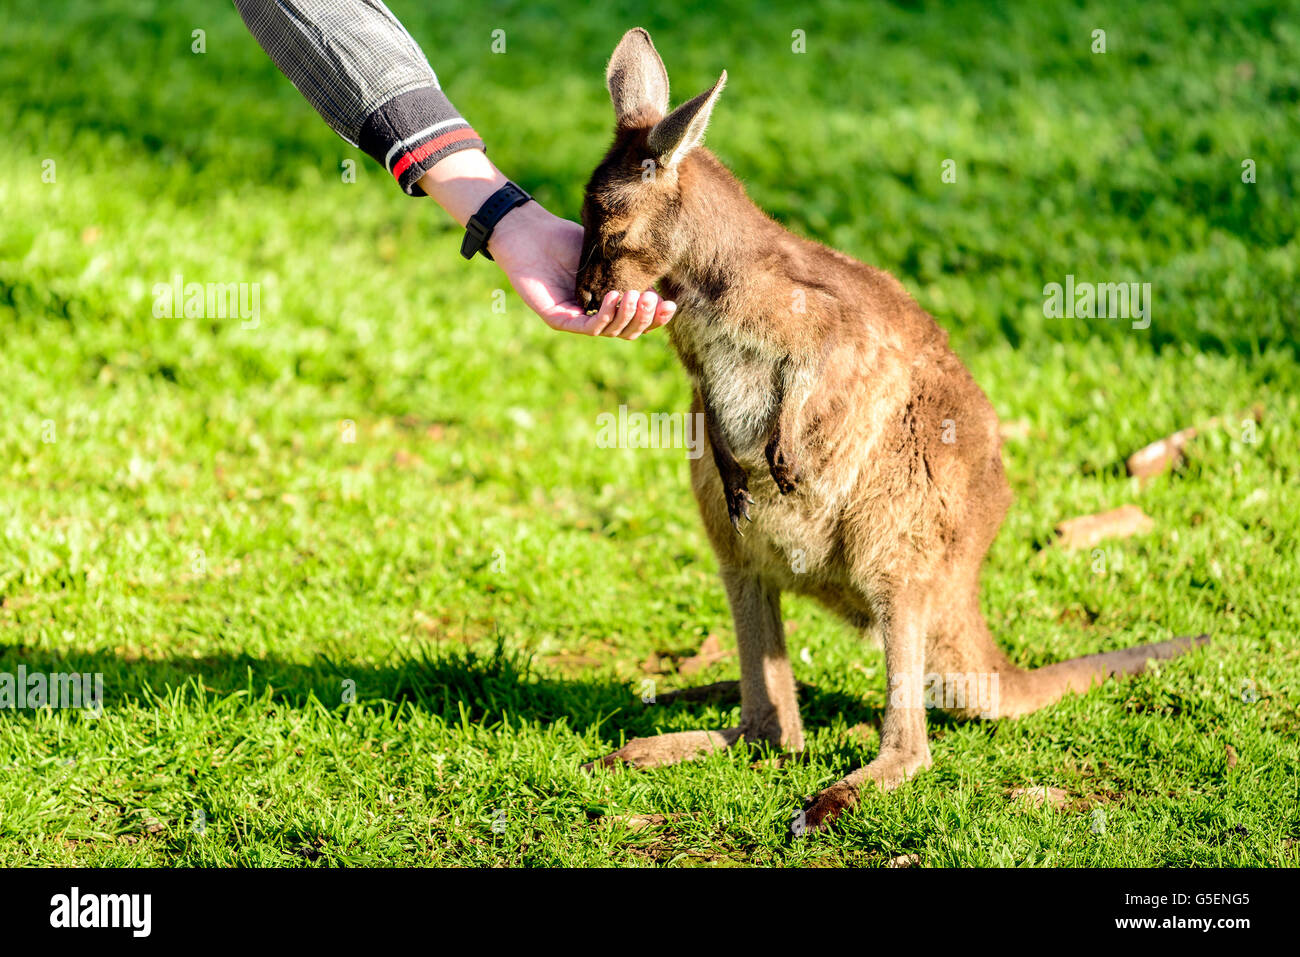 Boy feeding baby kangaroo from hand - Stock Image